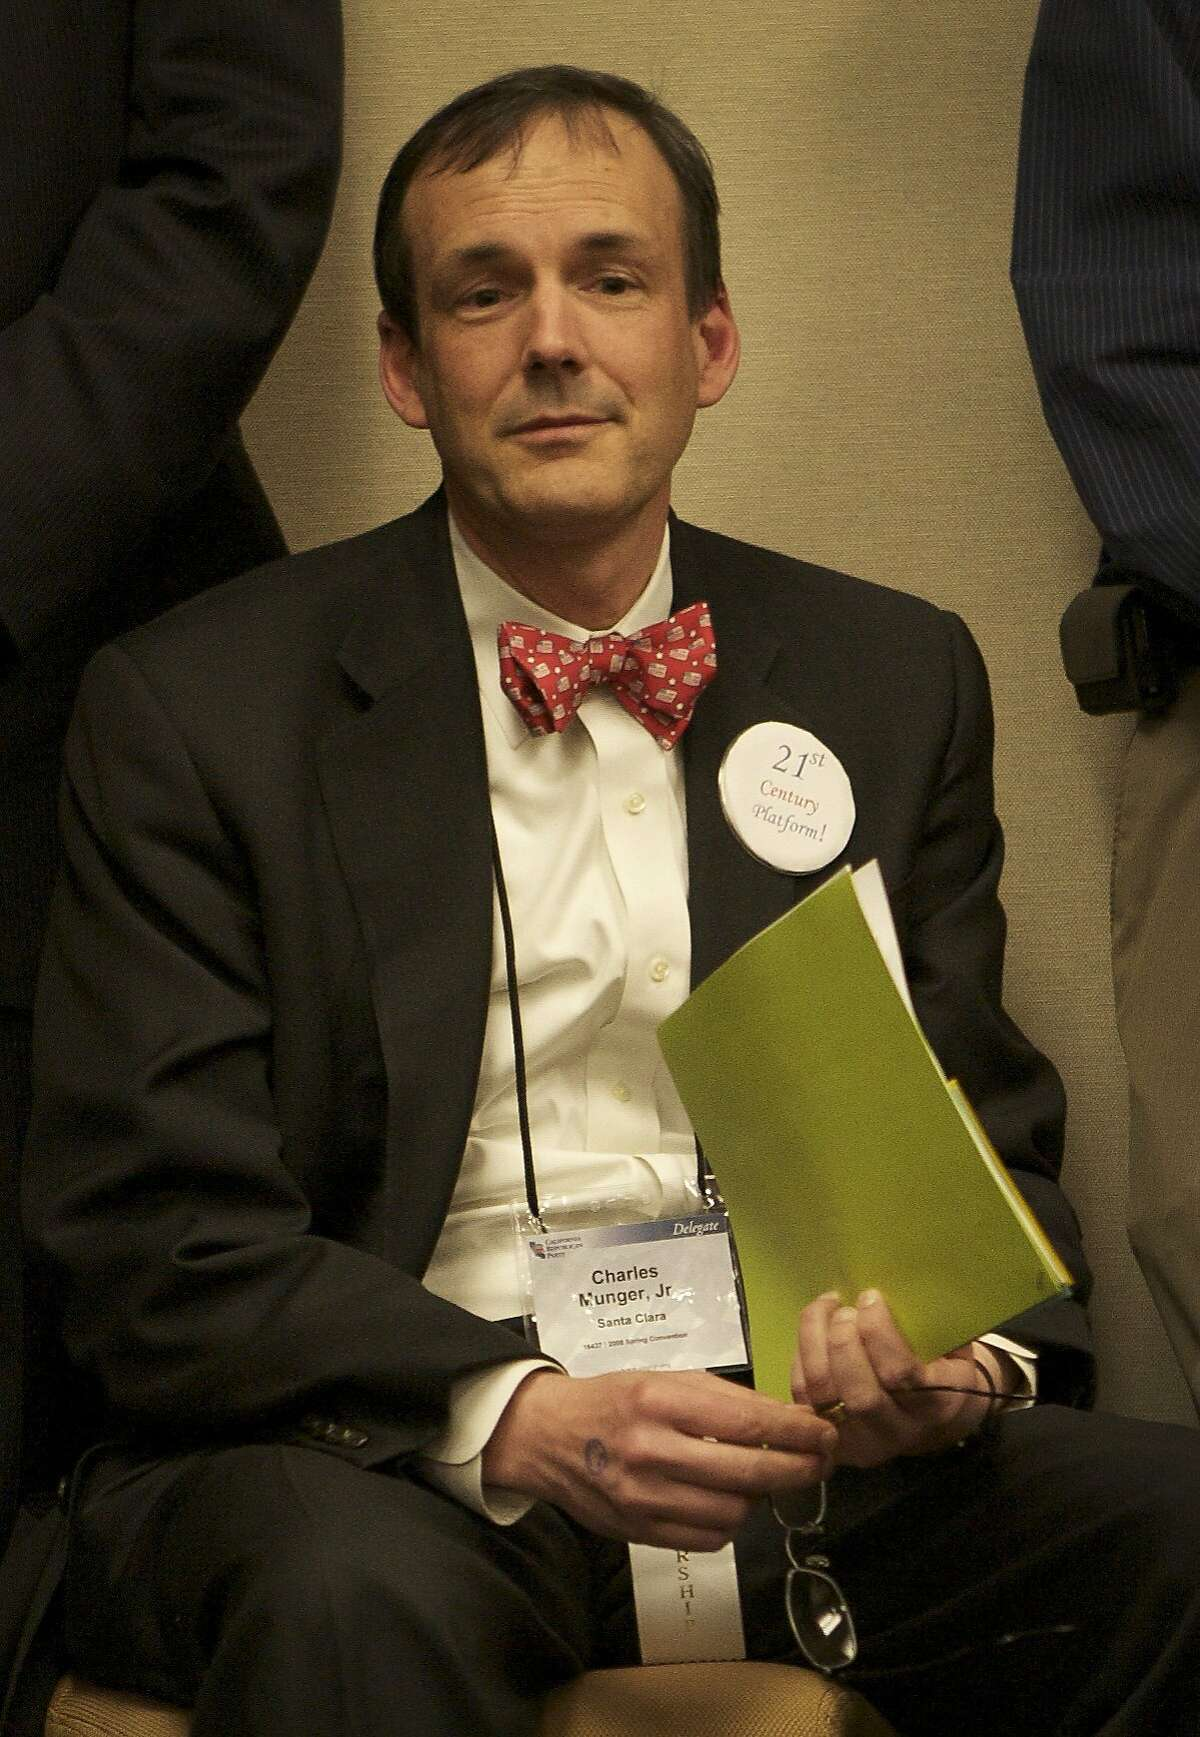 In this photo taken Feb. 22, 2008, Charles Munger Jr. of Santa Clara, a major donor to Proposition 32 on the California ballot is seen at the California Republican Party convention in San Francisco. Munger, the son of wealthy investor Charles Munger Sr., is on the opposite side of the political isle as her half sister, Molly Munger, a wealthy civil rights attorney who is major donor behind Proposition 38, which increase taxes for education. Both Mungers have spent millions in this election year to transform California's political landscape. (AP Photo/Sacramento Bee, Brian Baer)